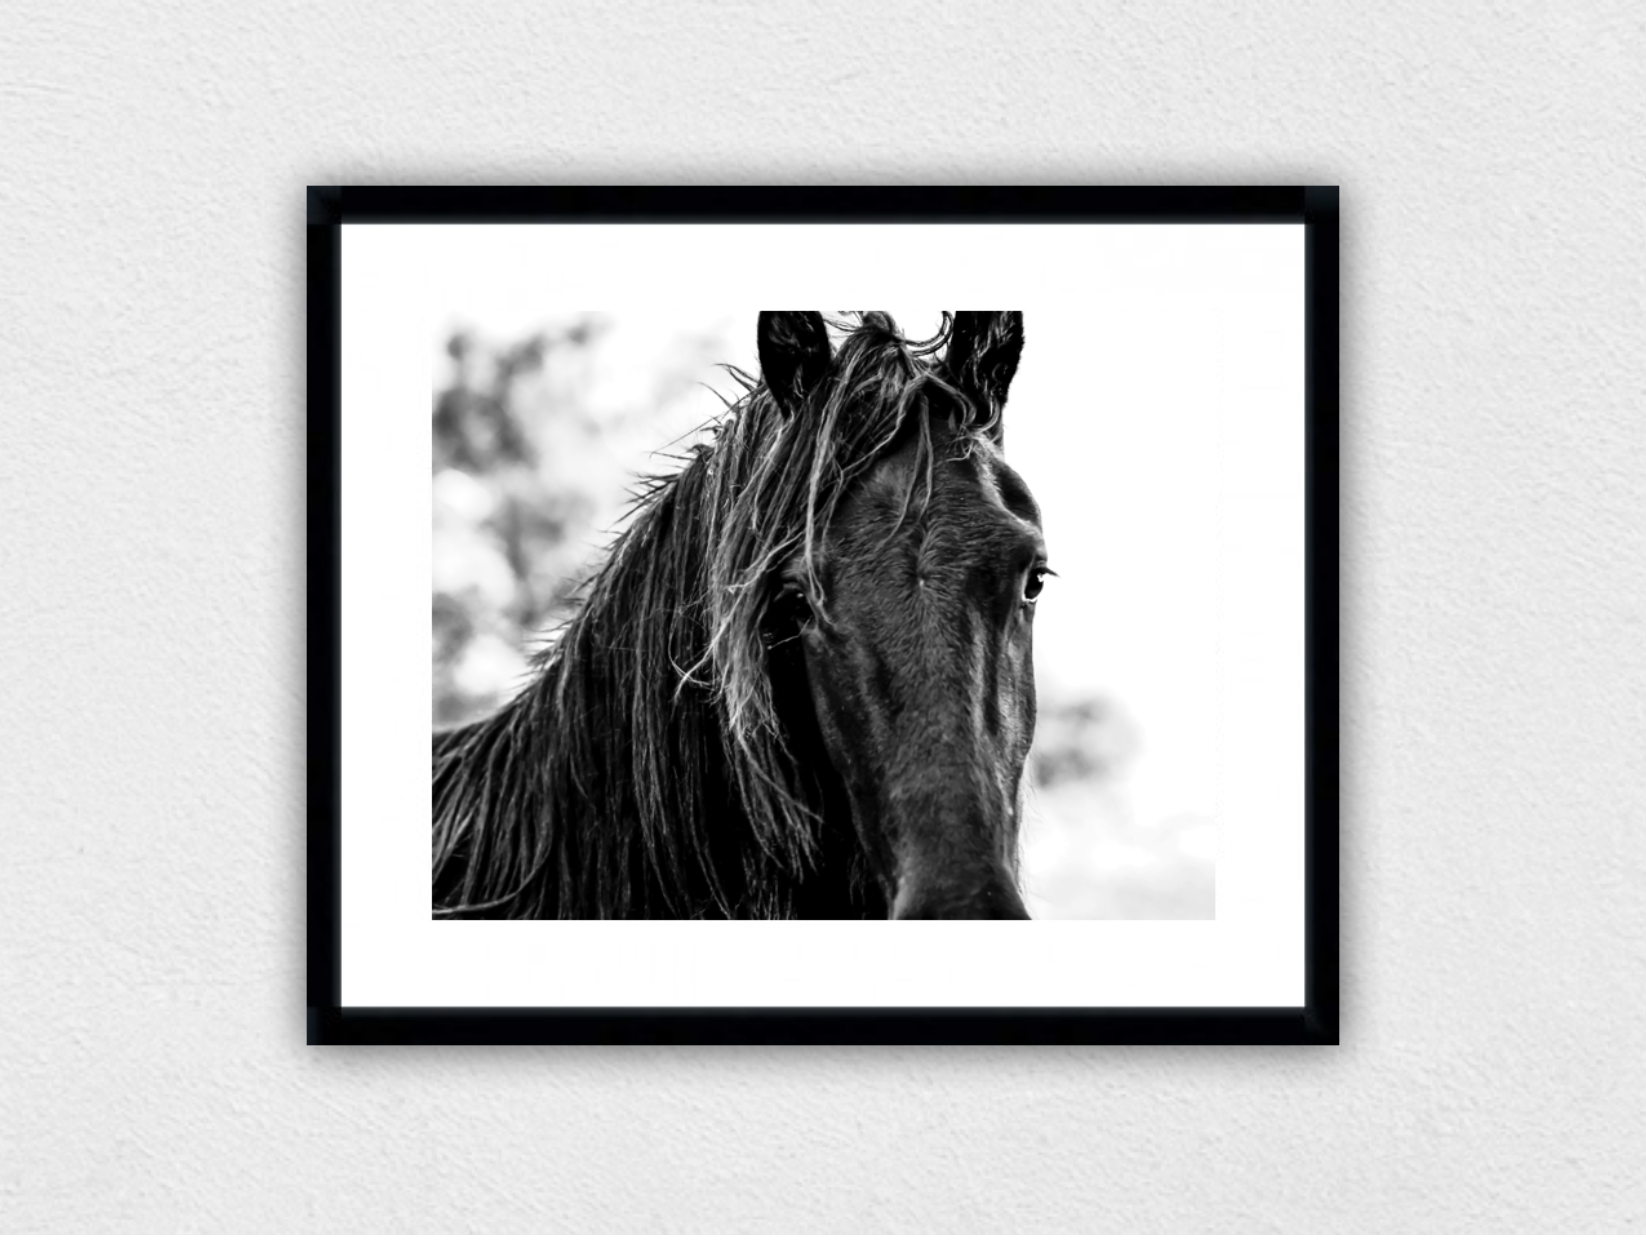 THE BLACK COLT - Seen here mounted and framed in black. All prints have the option of framing in black, white and natural timber (oak).